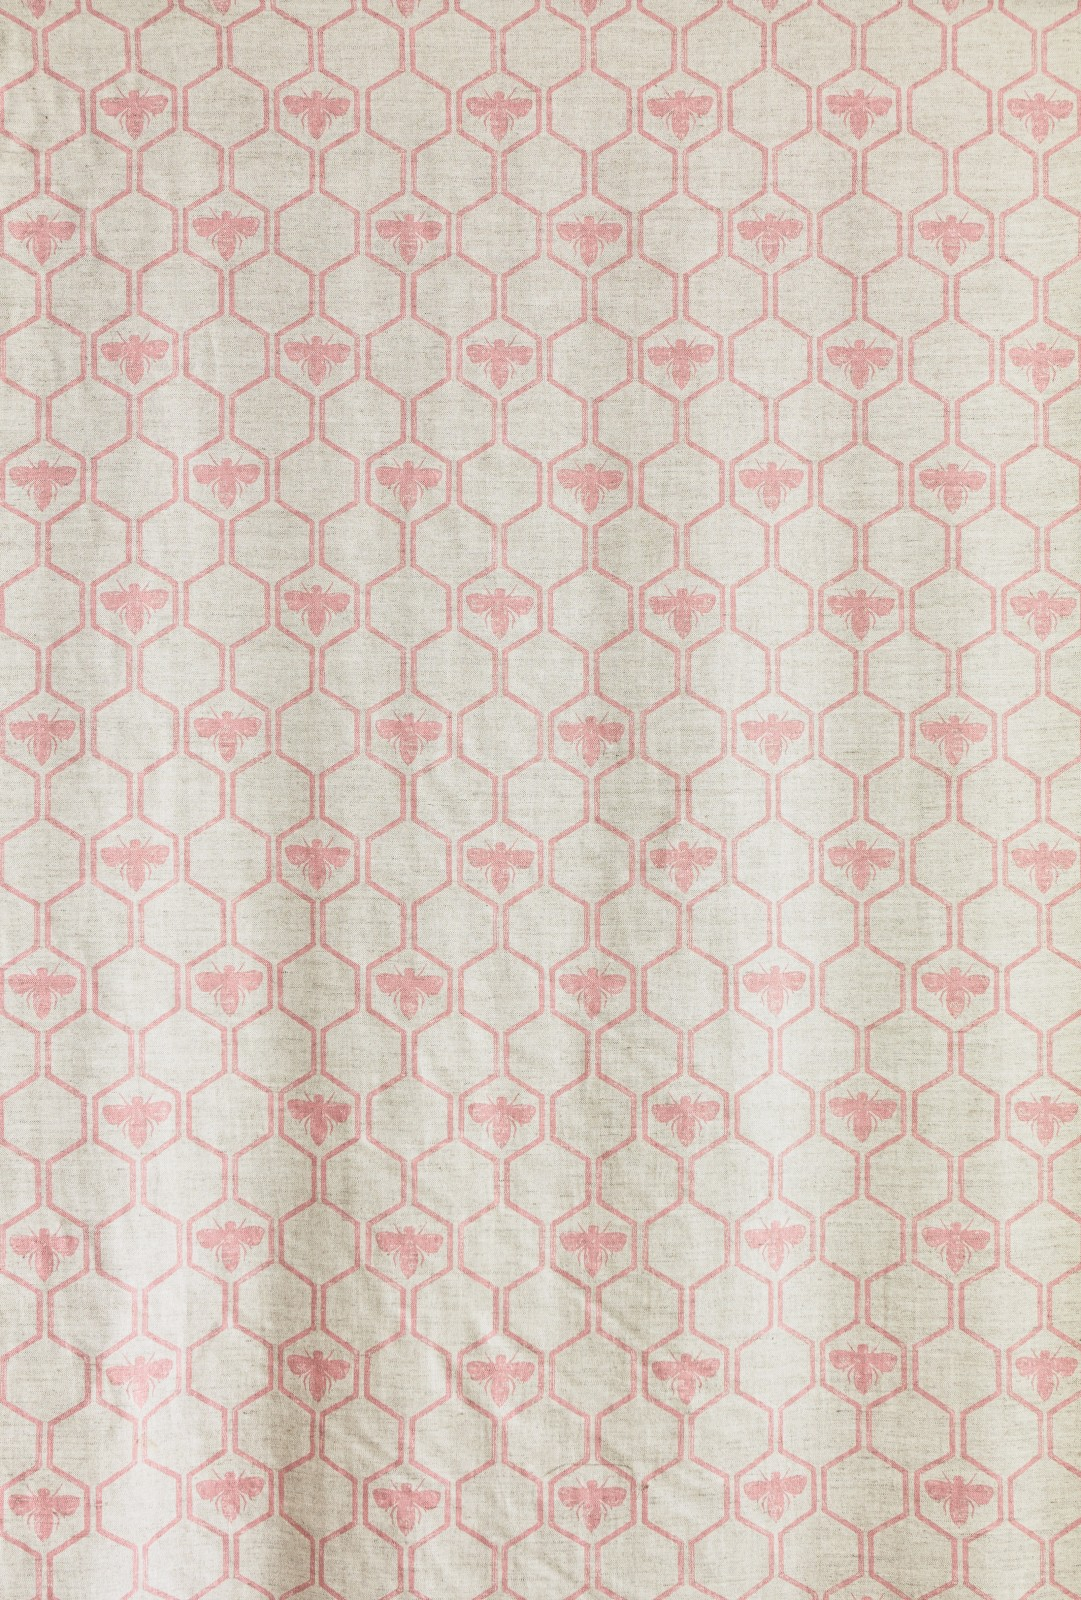 Honey Bees Fabric Rose